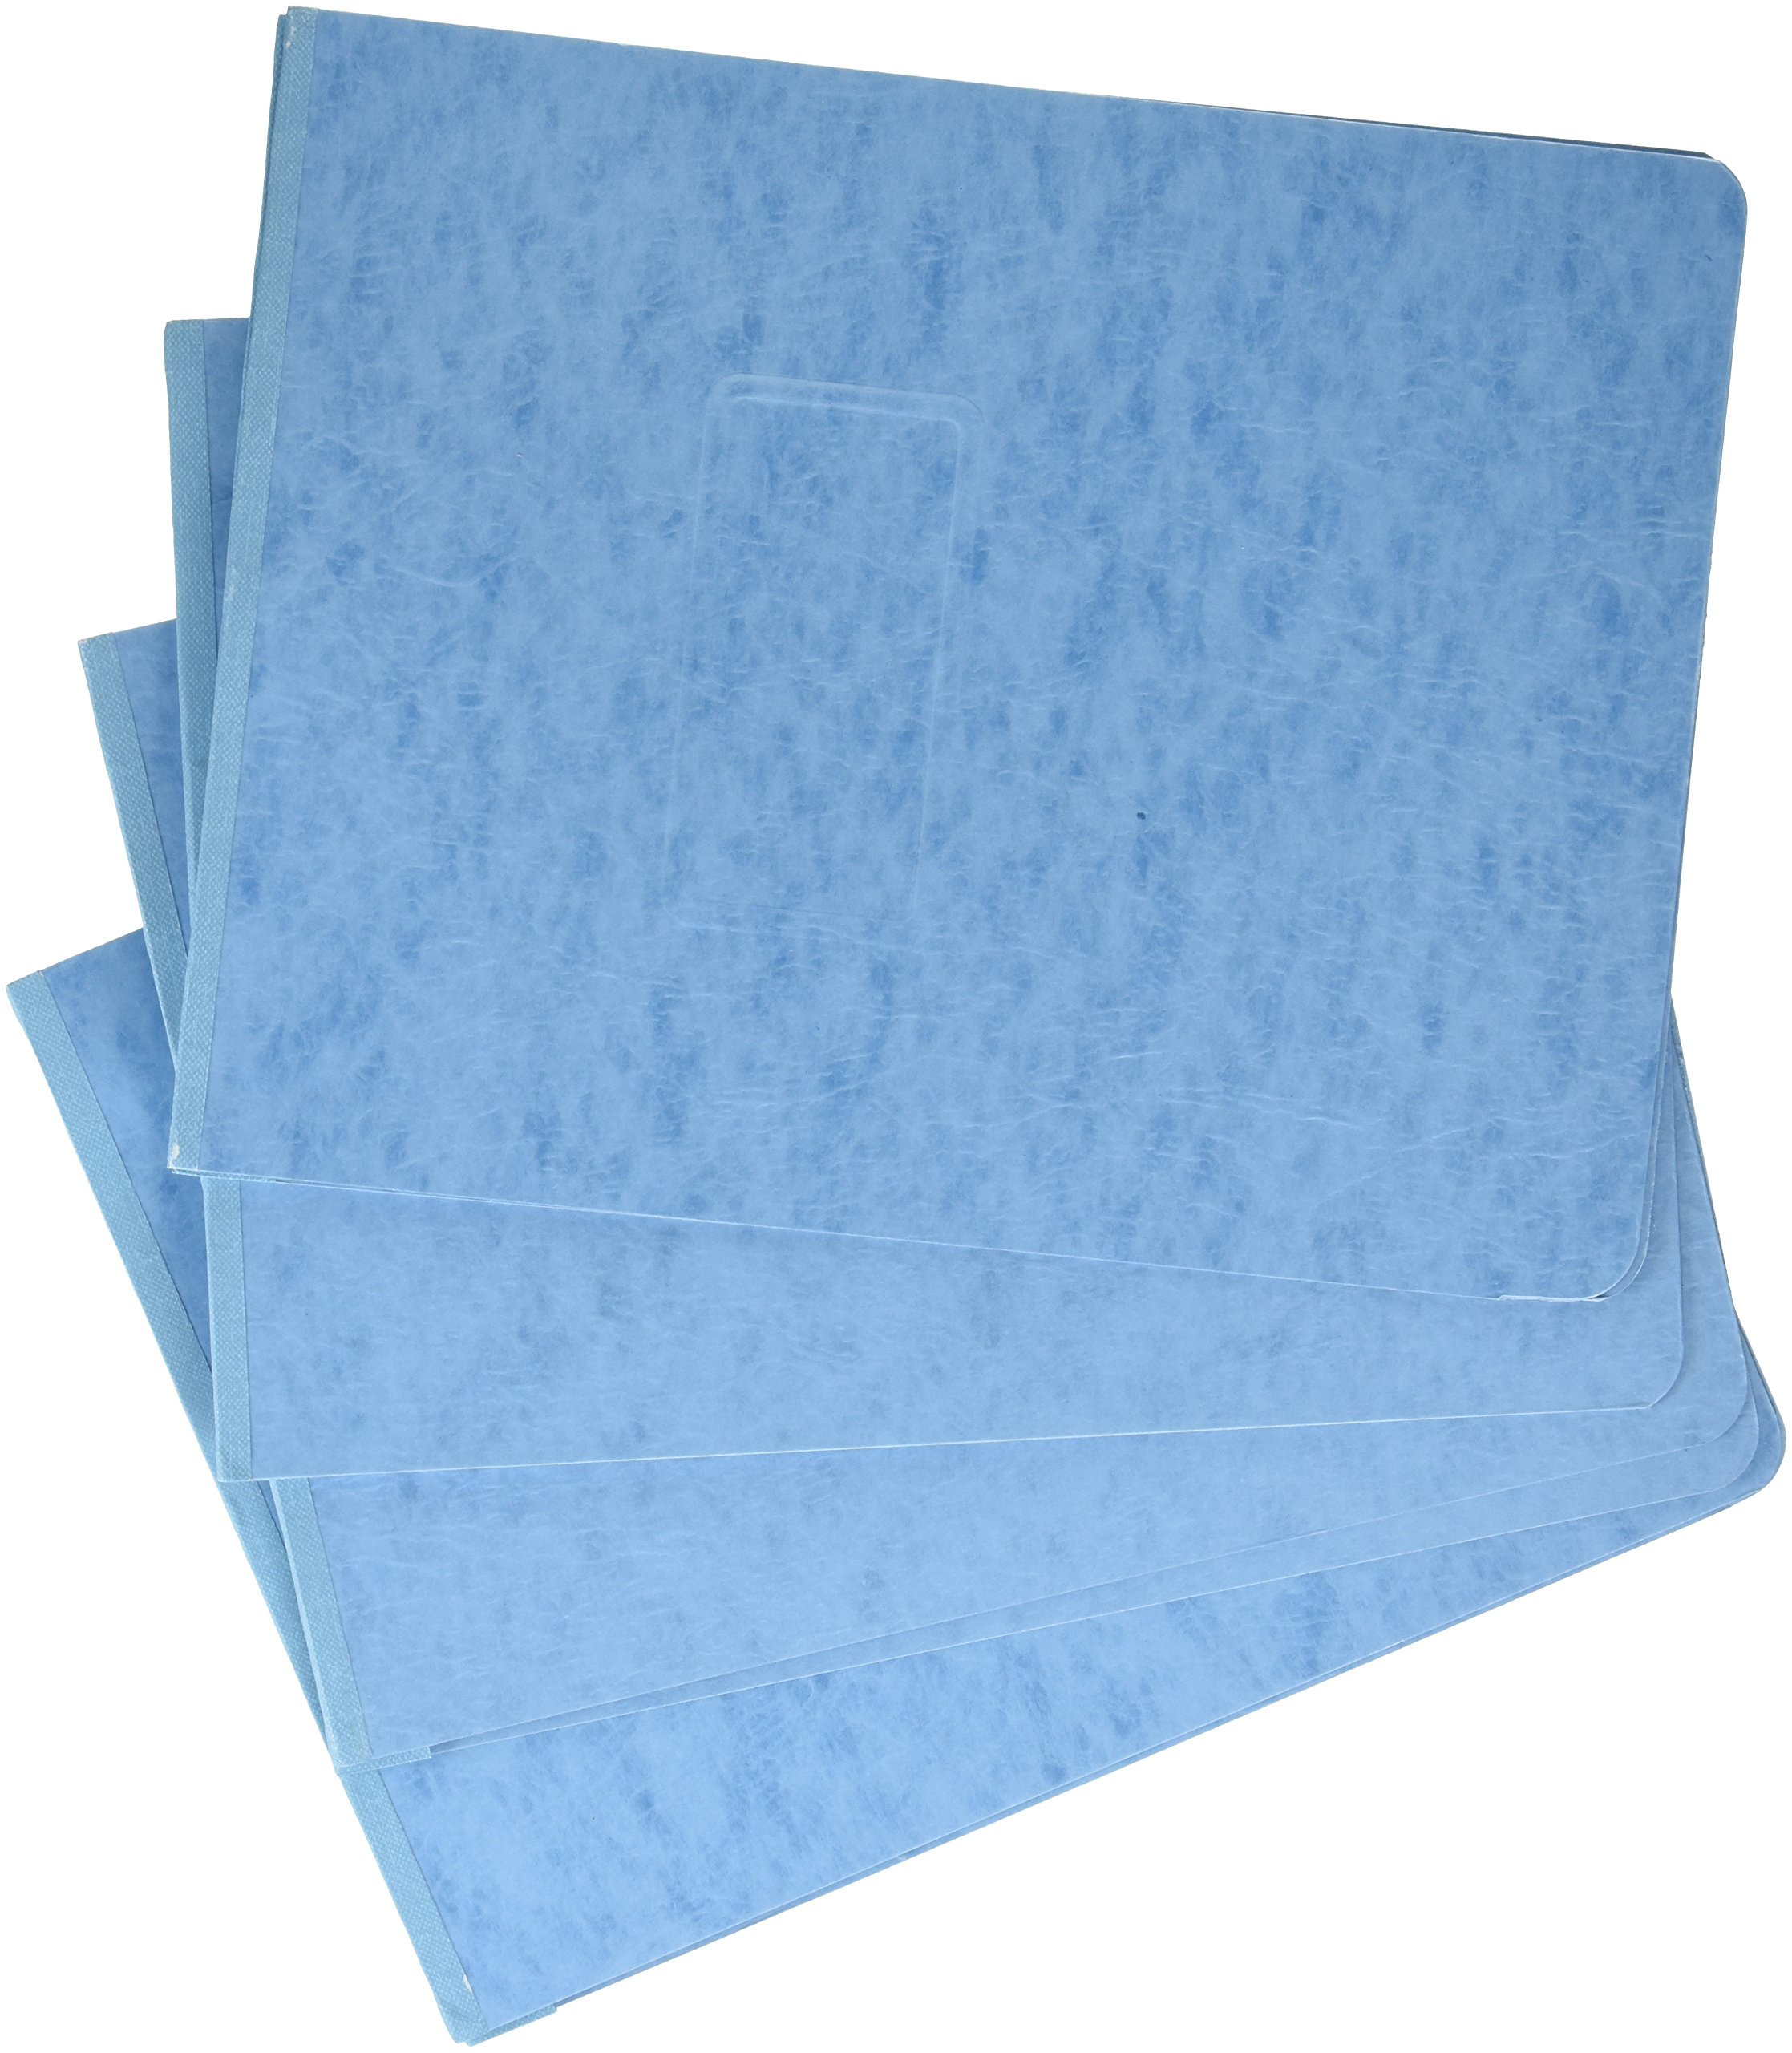 Oxford Pressguarad Report Covers with Reinforced Top Hinge, Light Blue, Letter Size, 25 Per Box (71101)